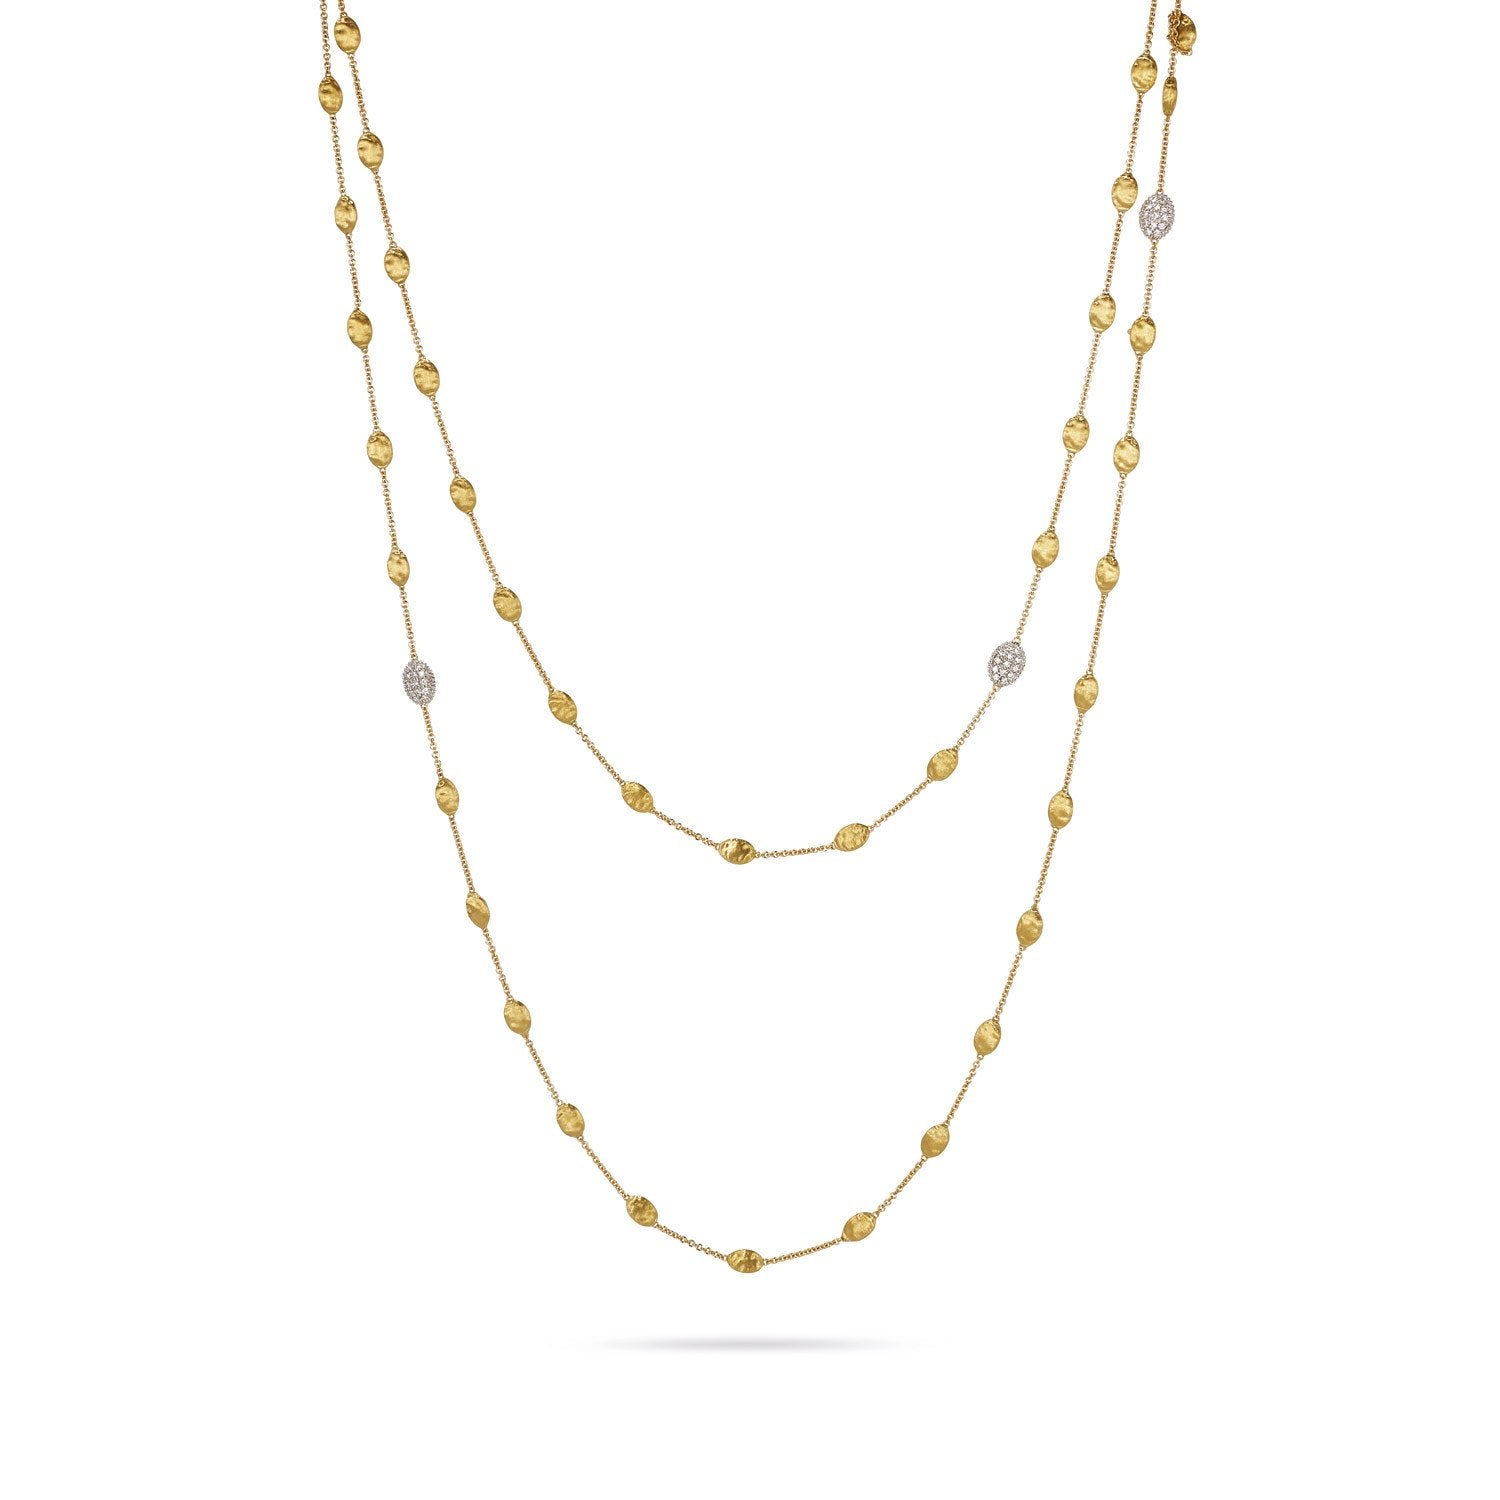 18K Gold & Diamond Long Necklace